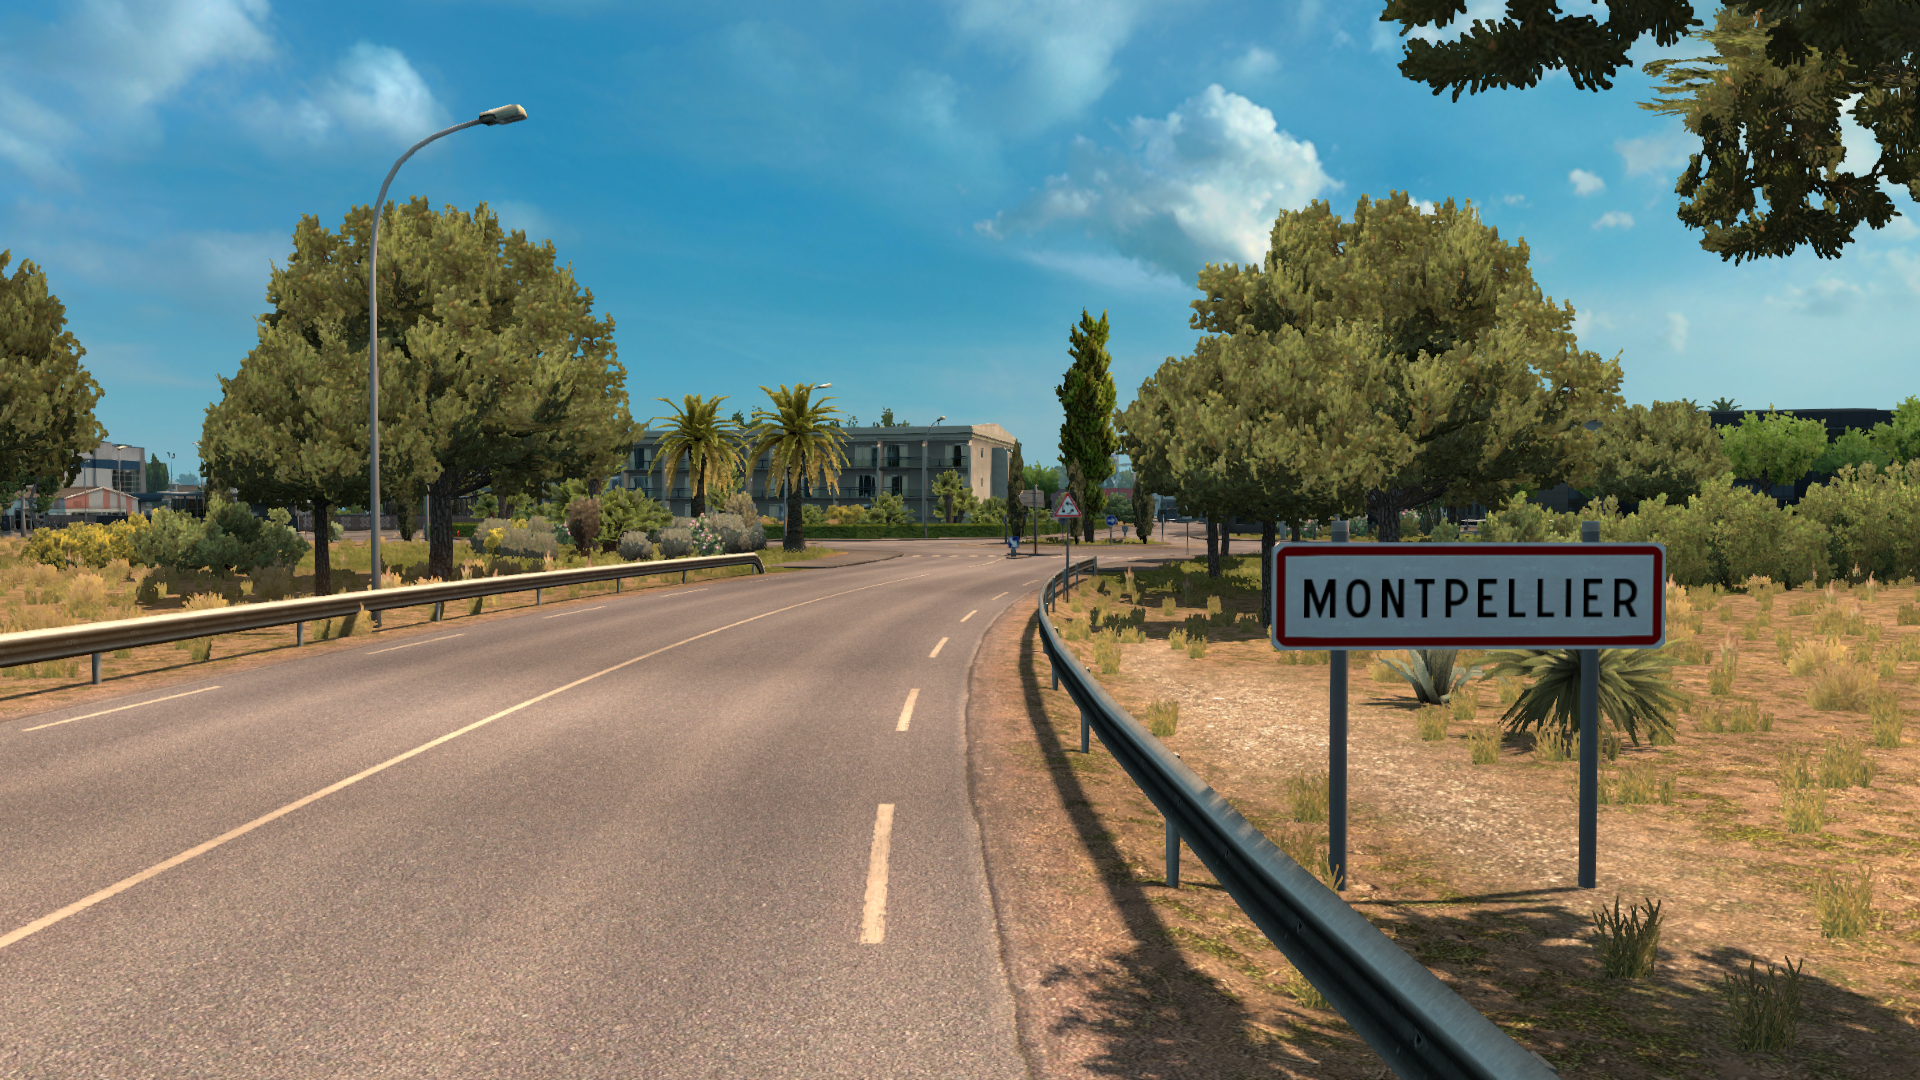 montpellier truck simulator wikia fandom powered by wikia. Black Bedroom Furniture Sets. Home Design Ideas